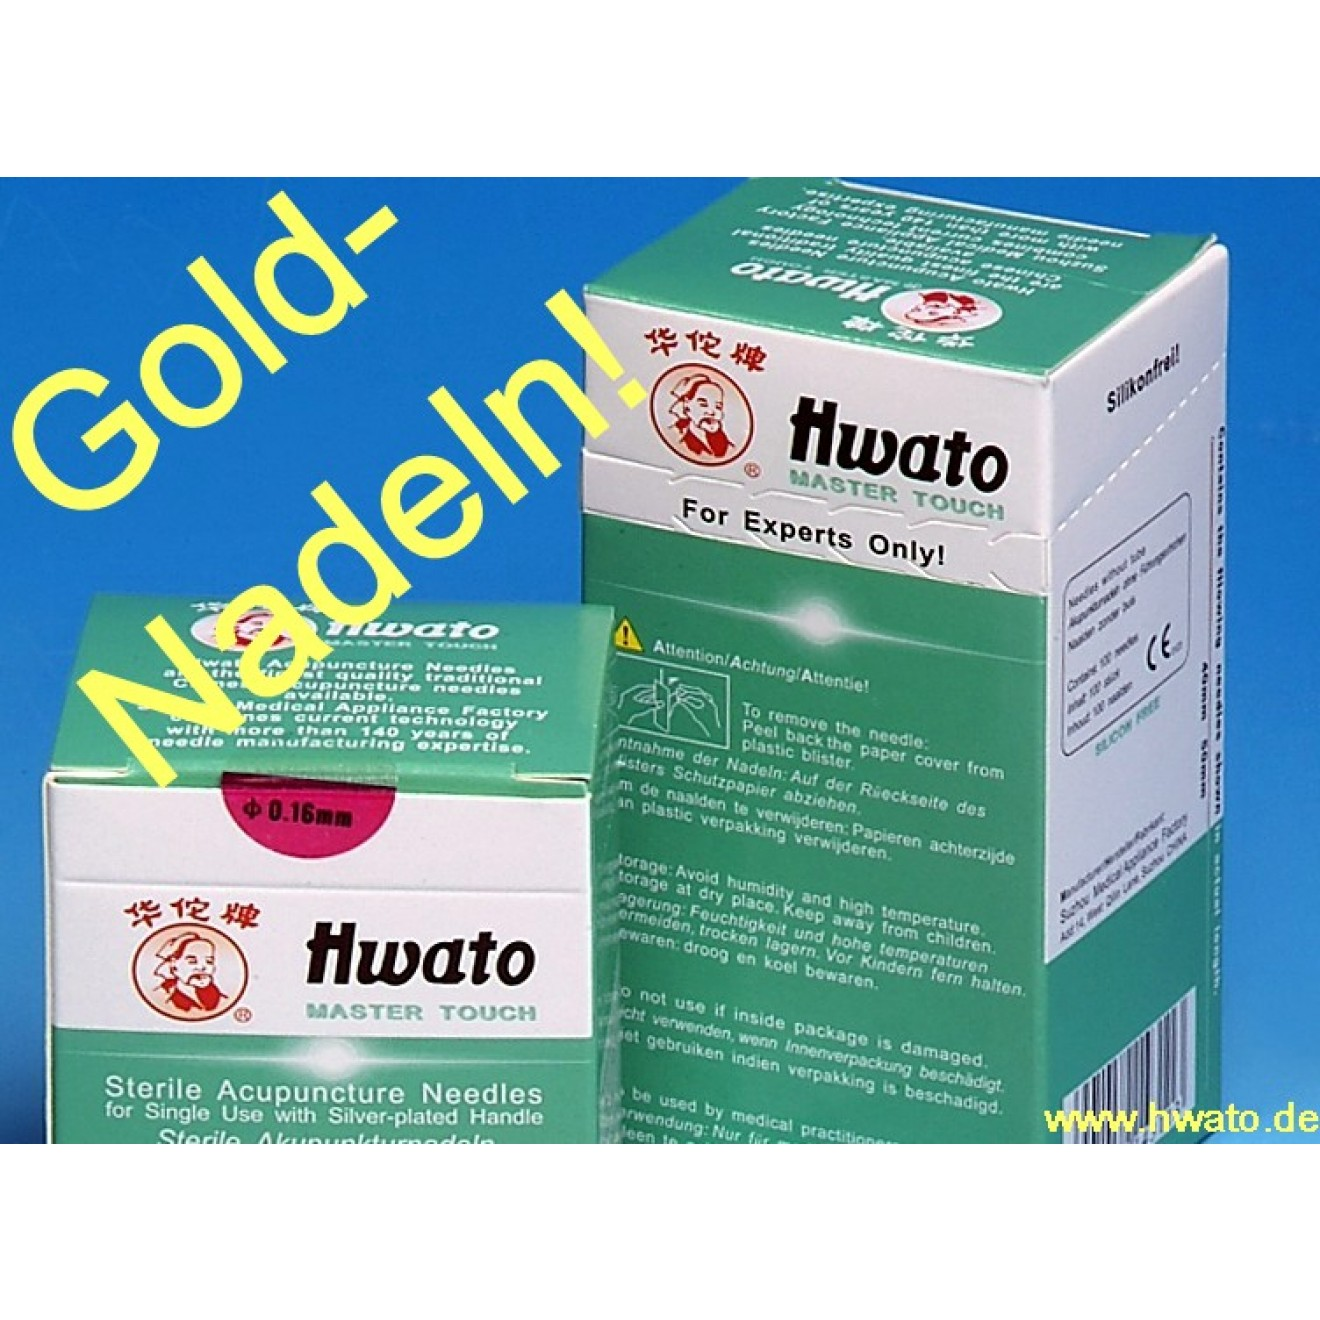 Gold-Akupunkturnadeln 0,22 x 13 mm - 100 St. Packung - Hwato Master Touch